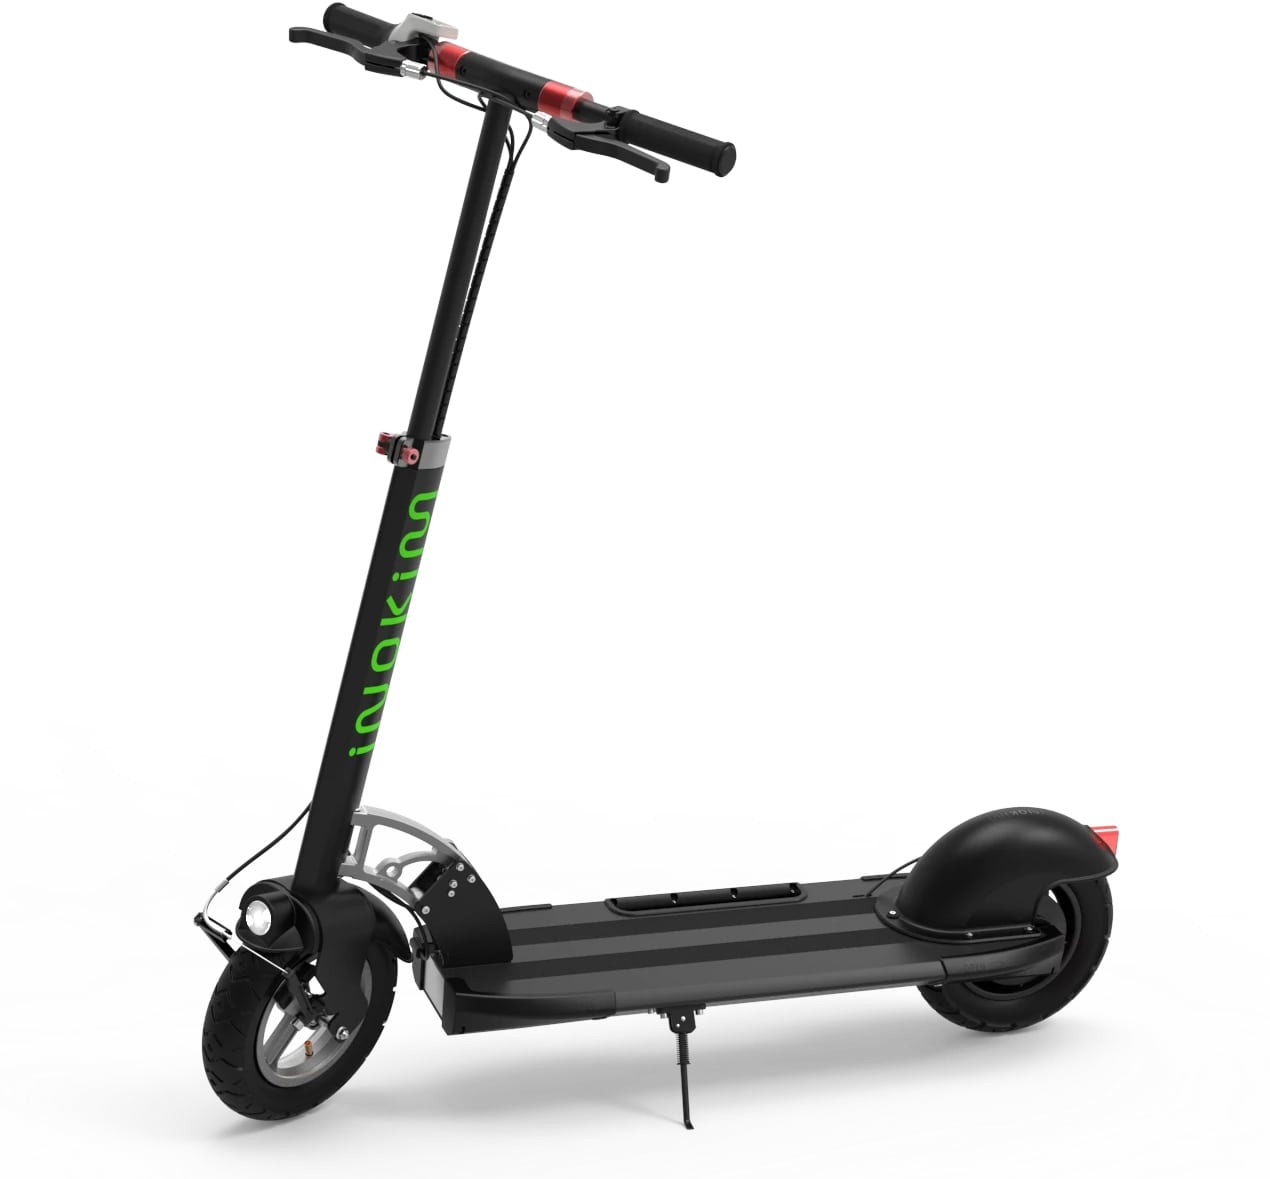 Inokim Quick 3 Electric Scooter Review